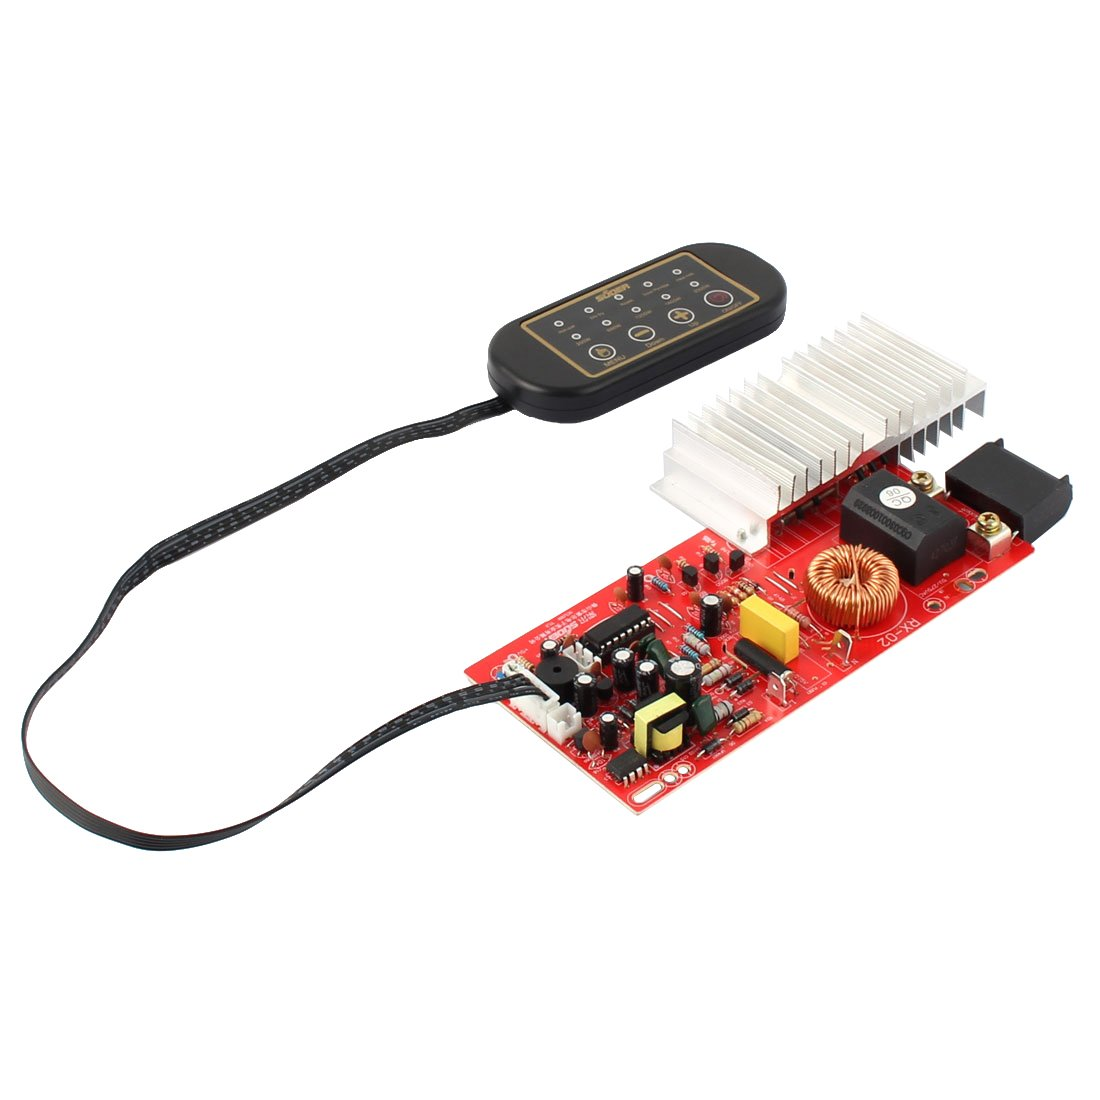 Buy Sellify Pcb Circuit Induction Cooker Controller Repairing Repair Boardelectric Cookerinduction Replacement Part Board Online At Low Prices In India